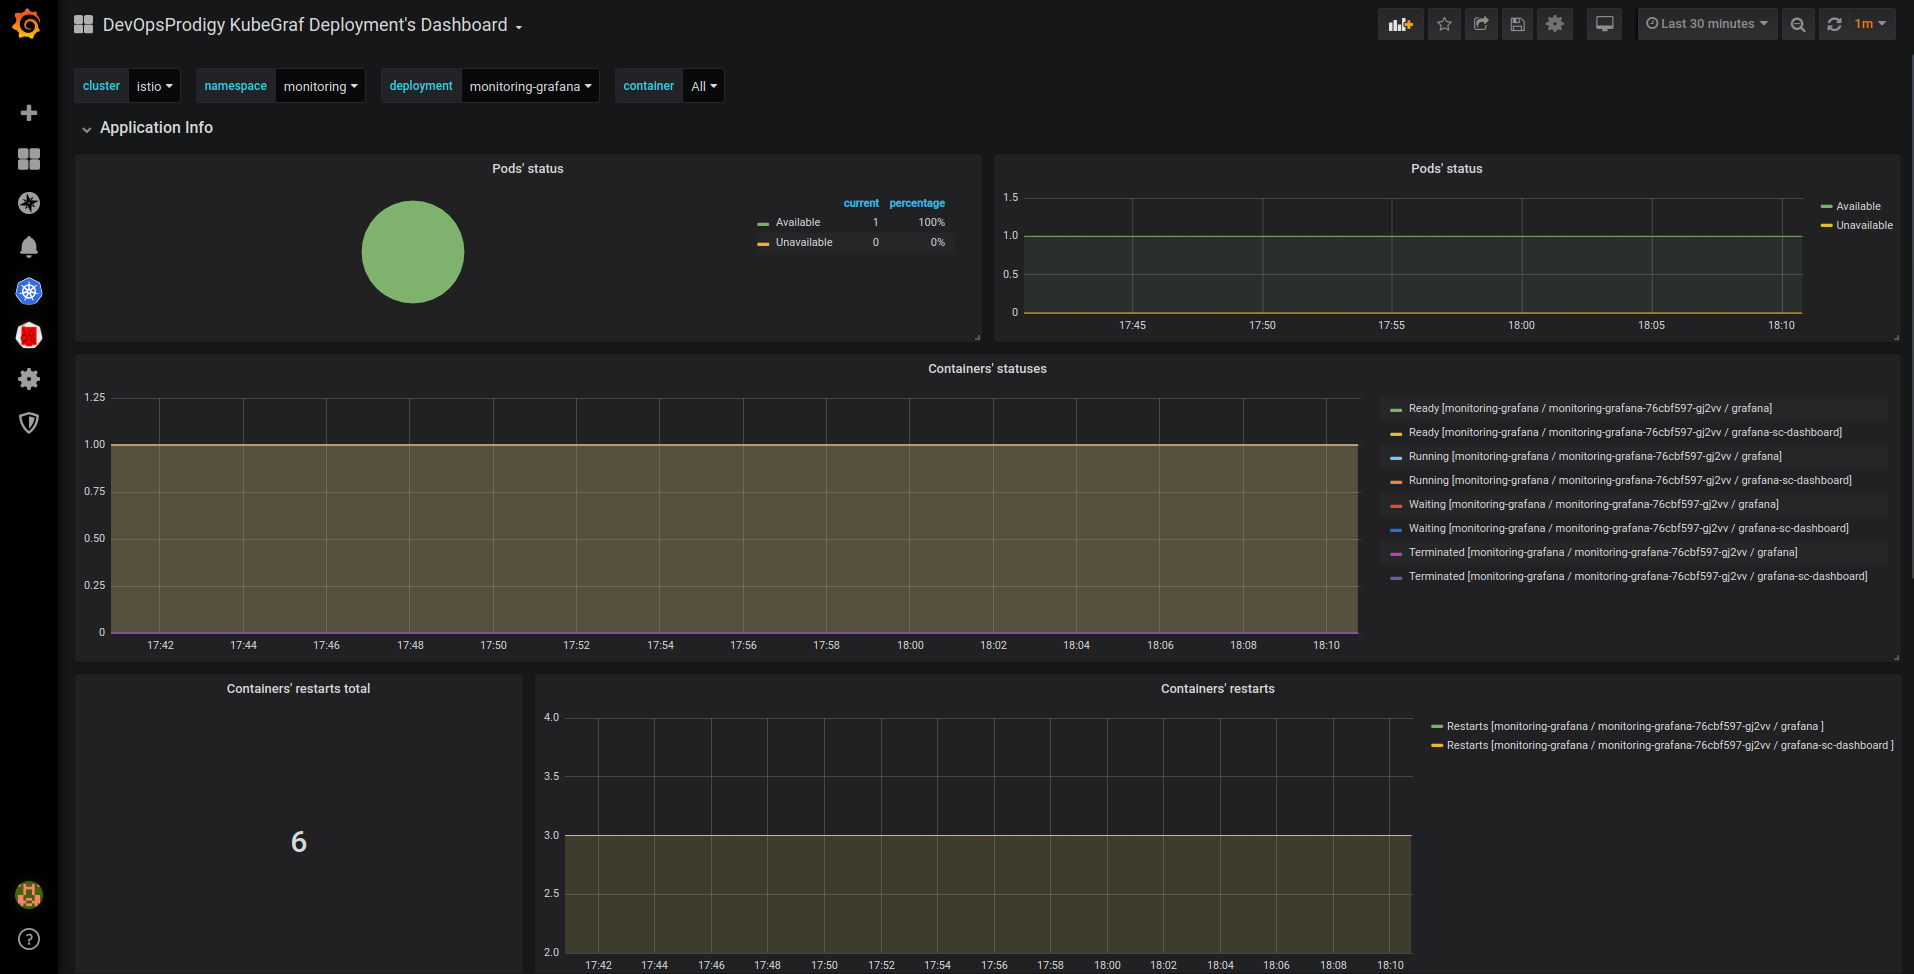 deployments_dashboard